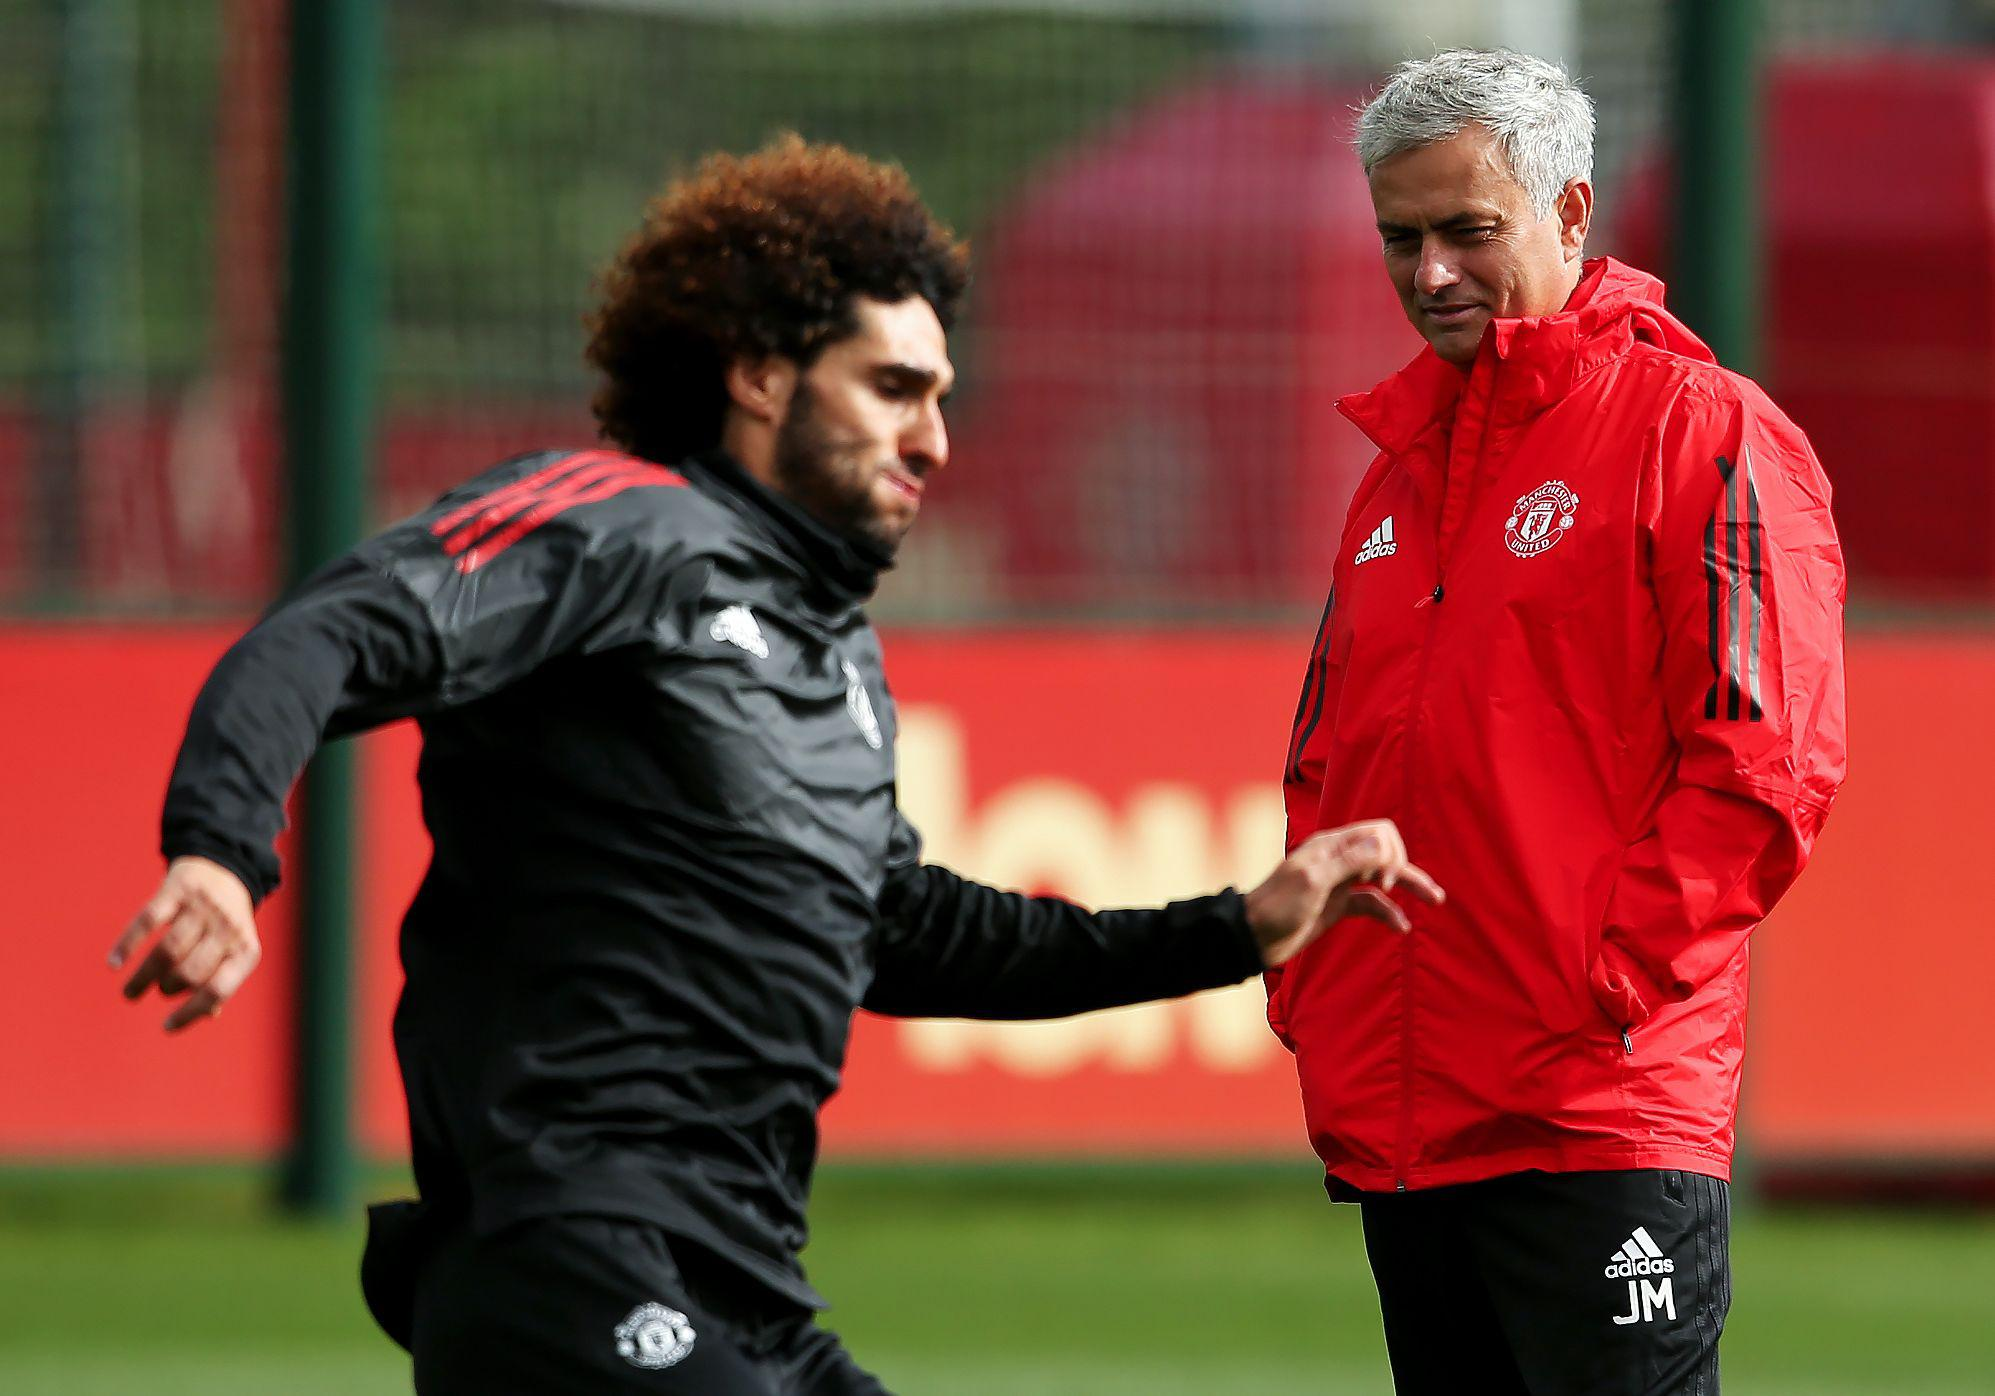 Fellaini's contract is set to expire at the end of the season